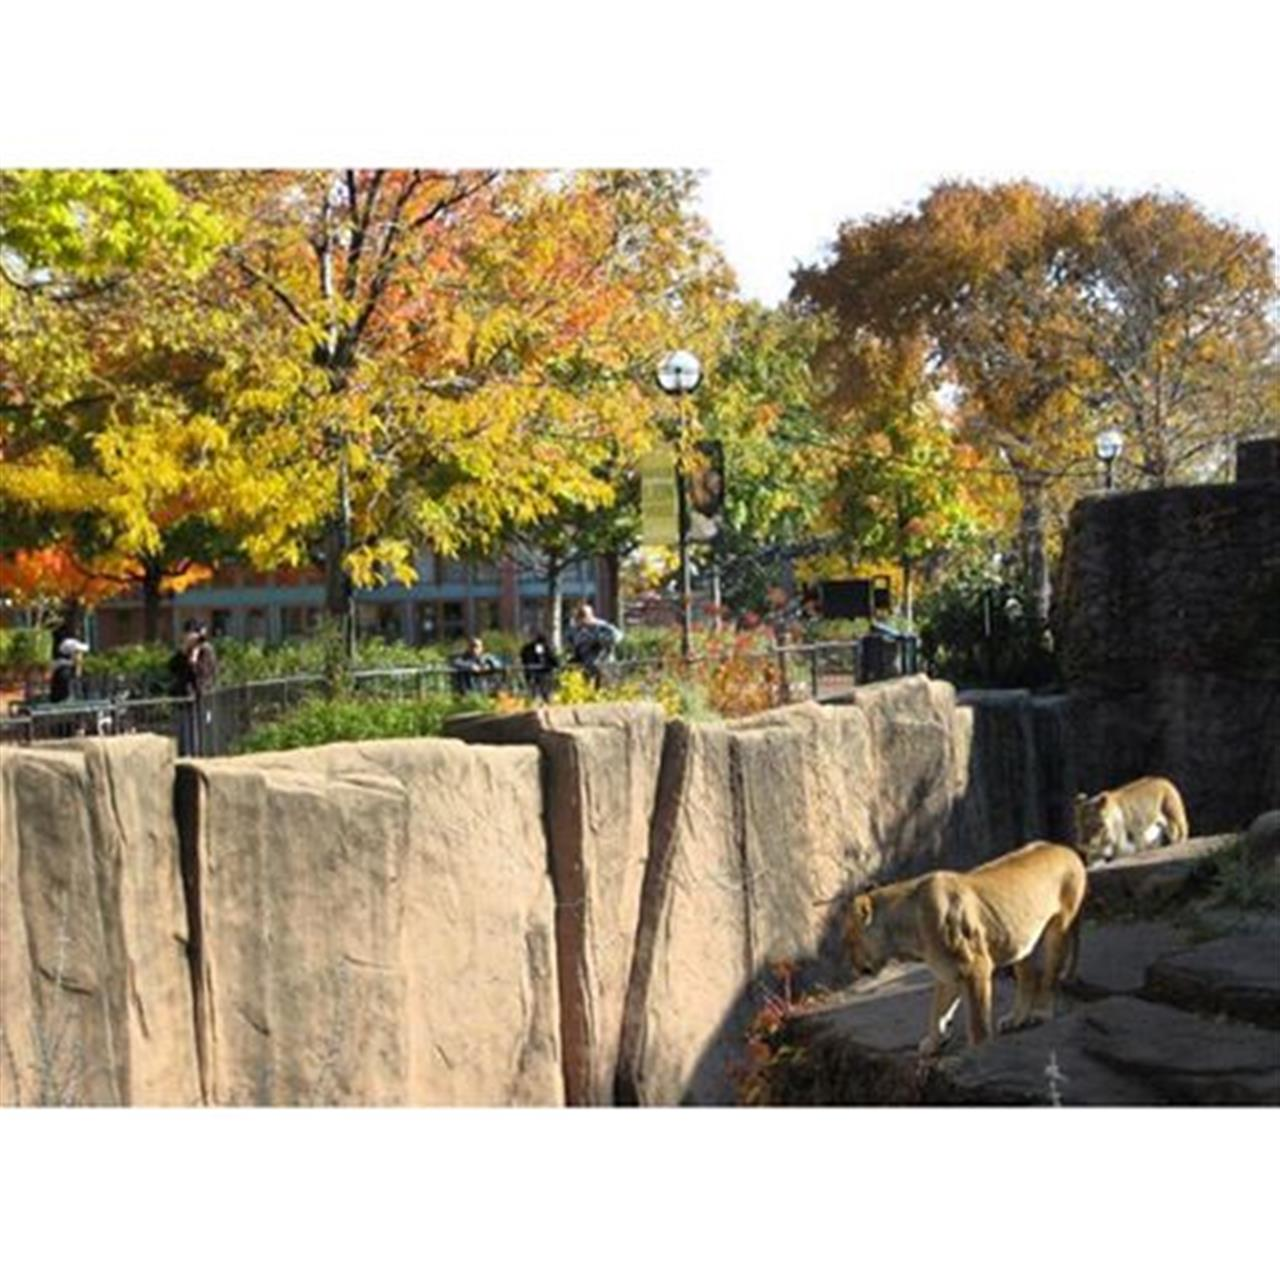 Day prowlers #lincolnparkzoo #chicago #leadingrelocal